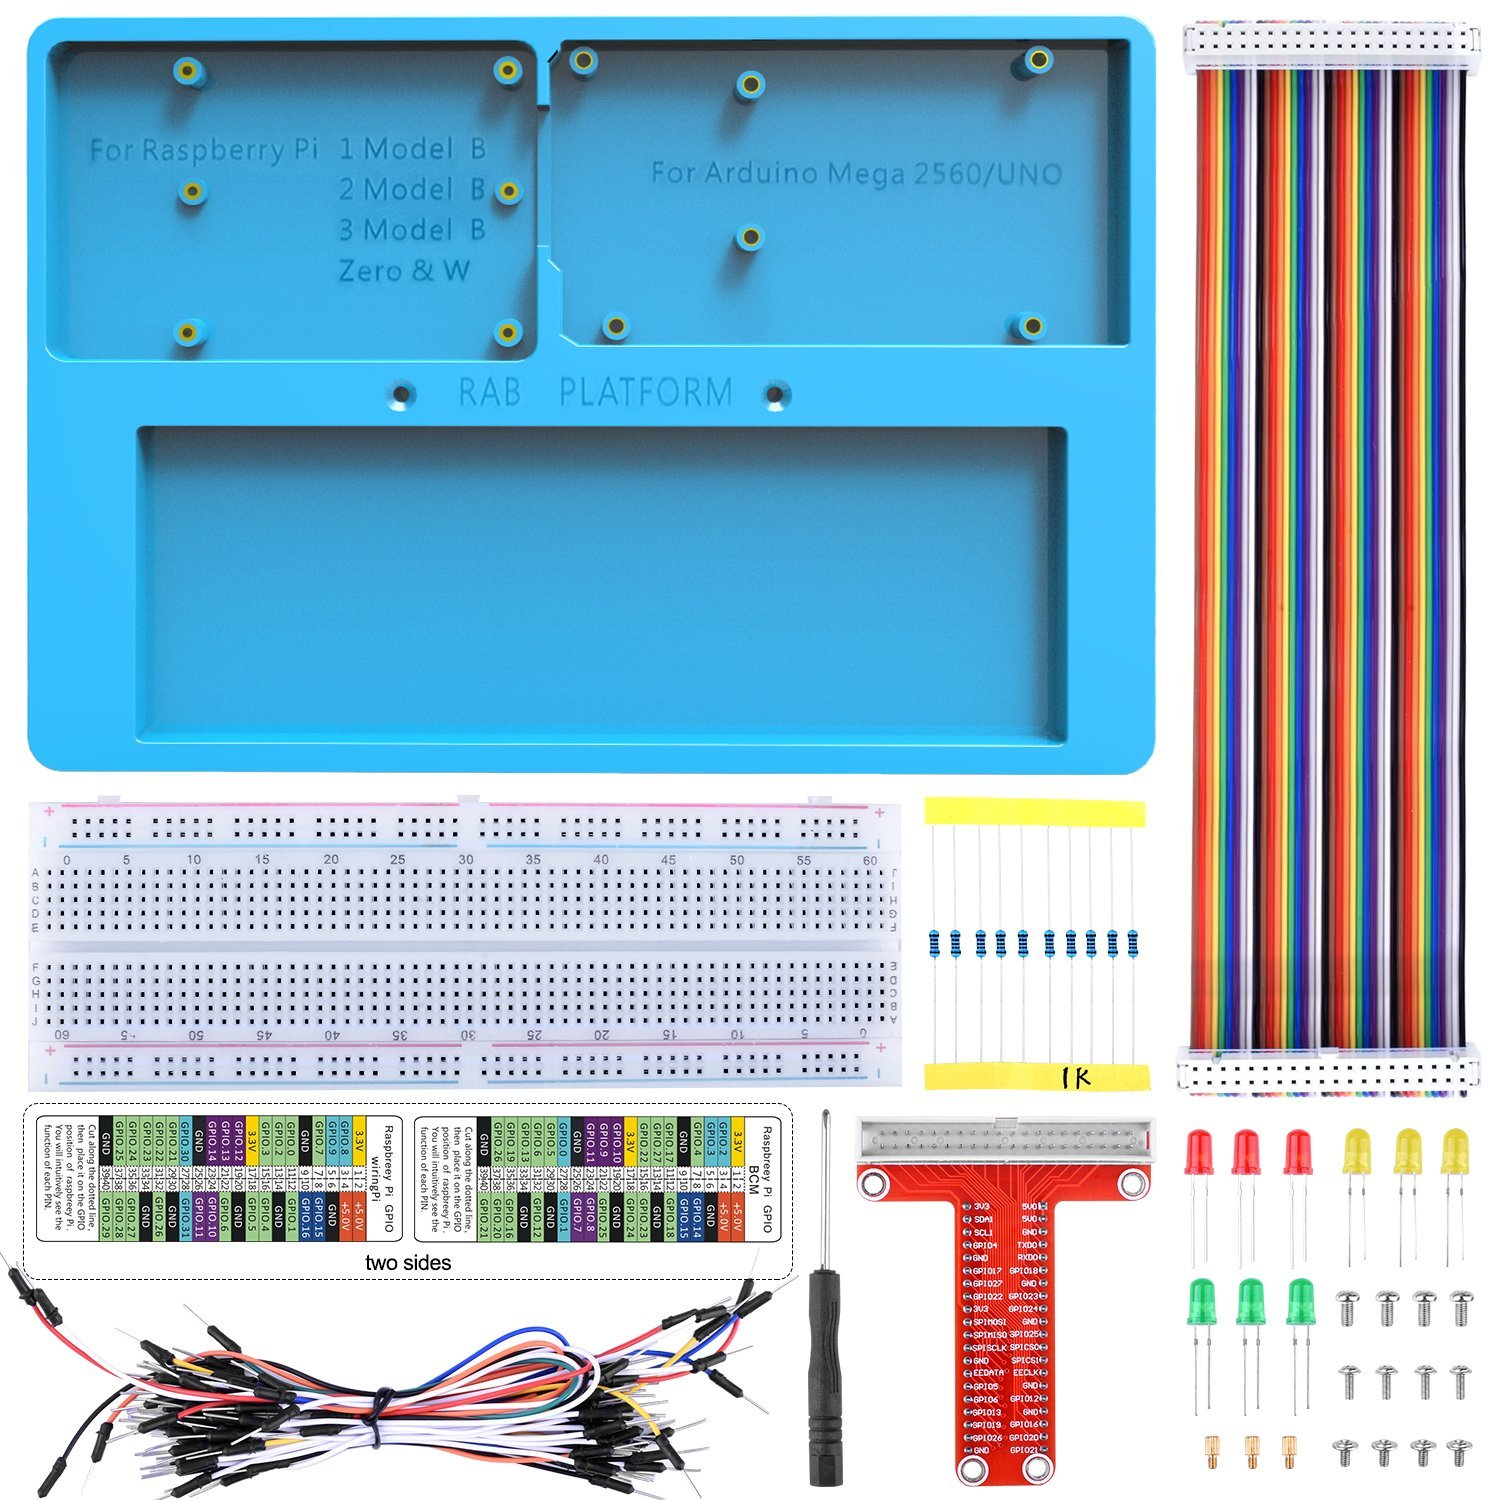 Kuman raspberry pi holder breadboard kit 7 in 1 rab holder kit for kuman raspberry pi holder breadboard kit 7 in 1 rab holder kit for arduino uno r3 mega 2560 raspberry pi 3 model b 2 model b1 model b rpi zerokits greentooth Image collections